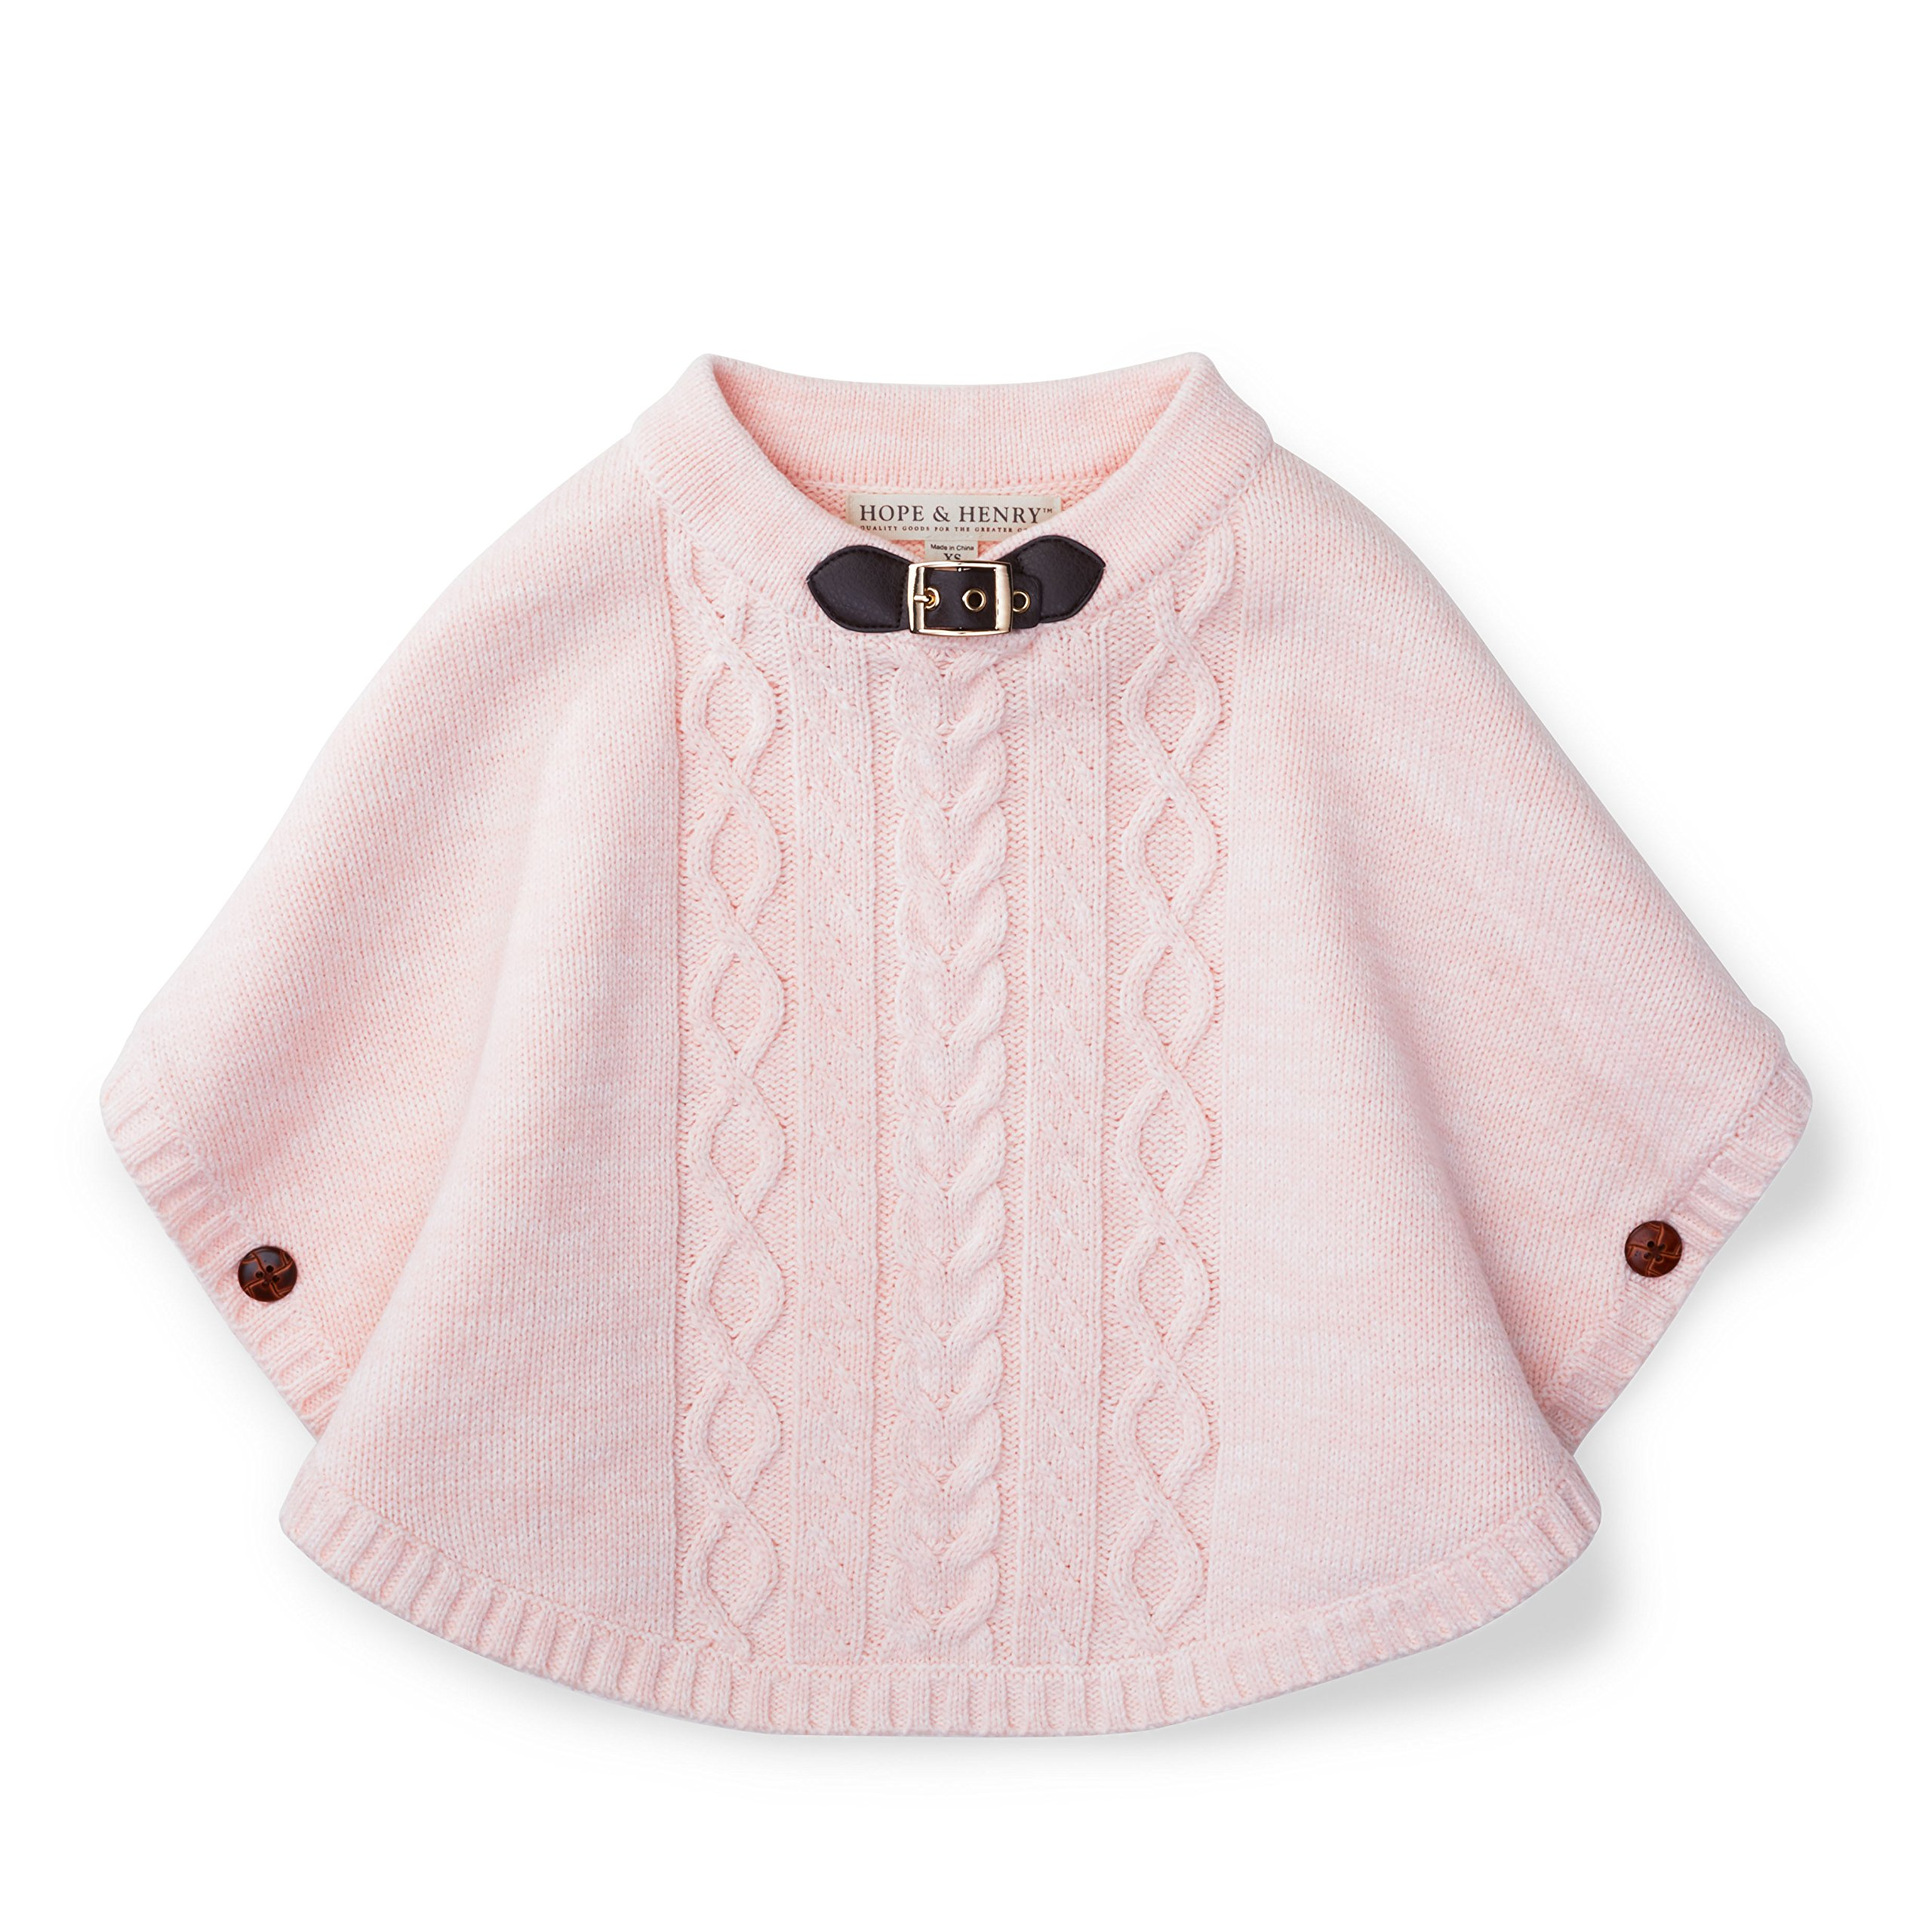 Hope & Henry Girls Heather Pink Cable Sweater Cape